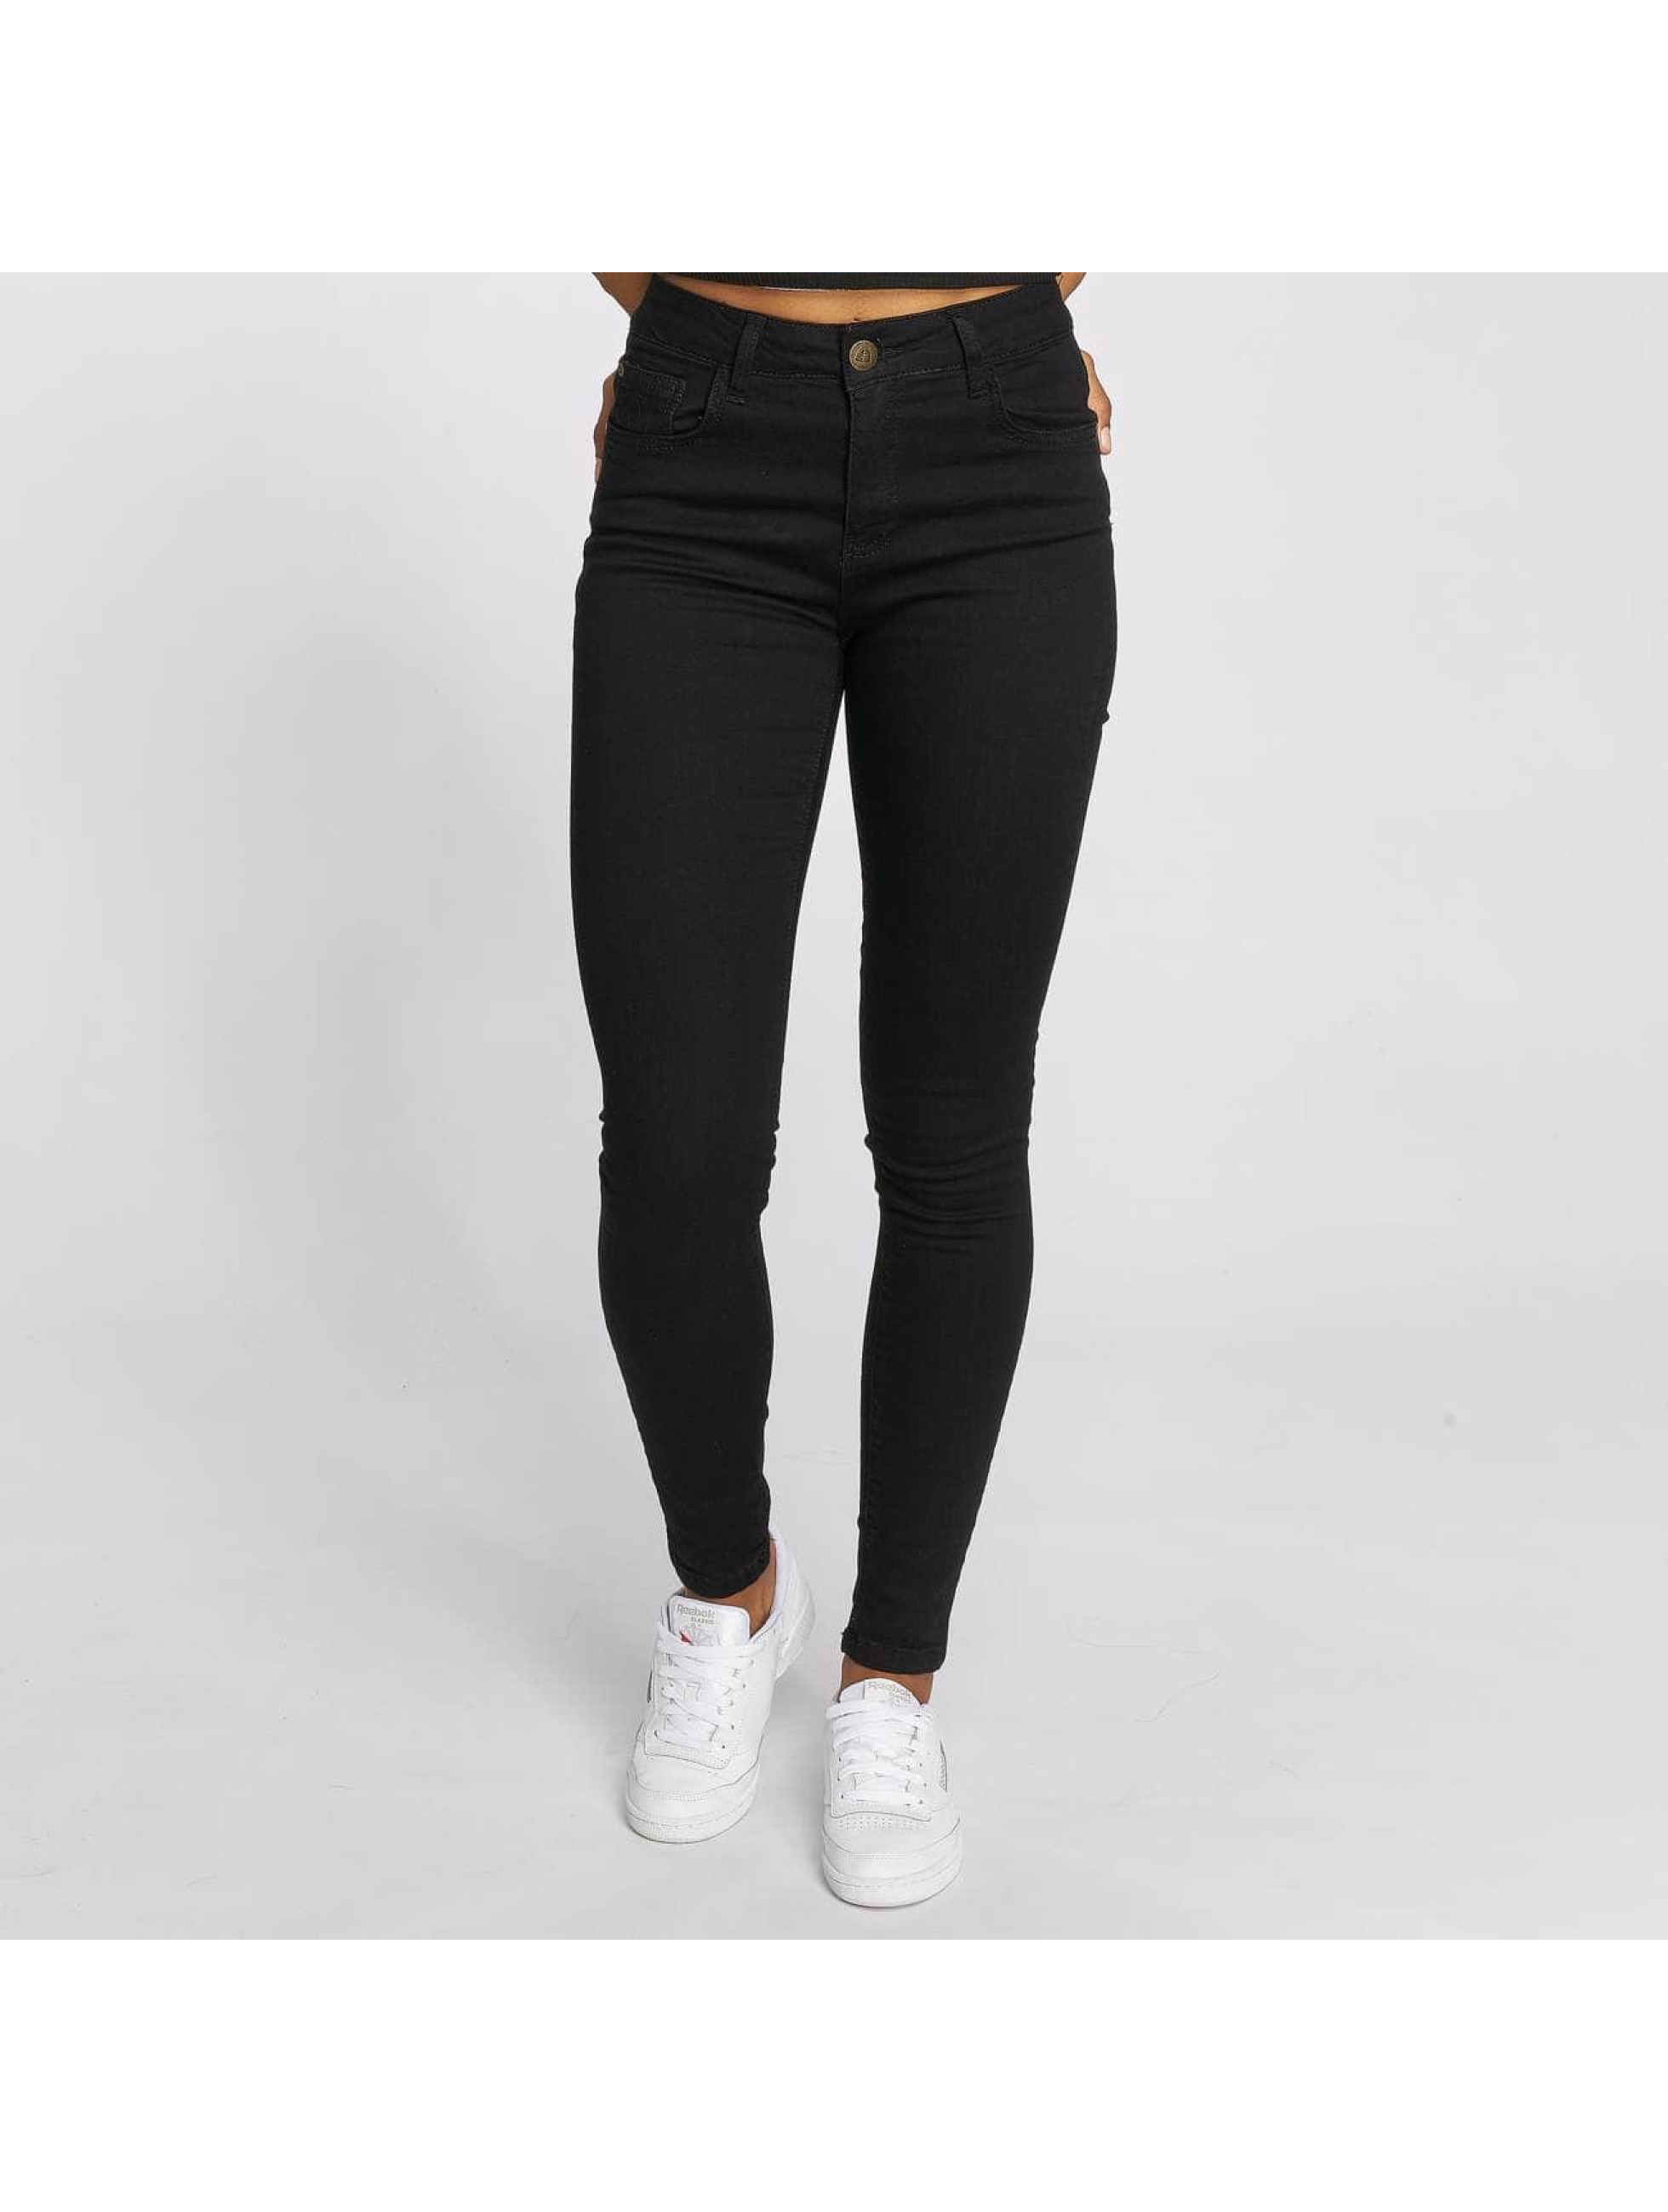 Just Rhyse / Skinny Jeans Buttercup in black W 29